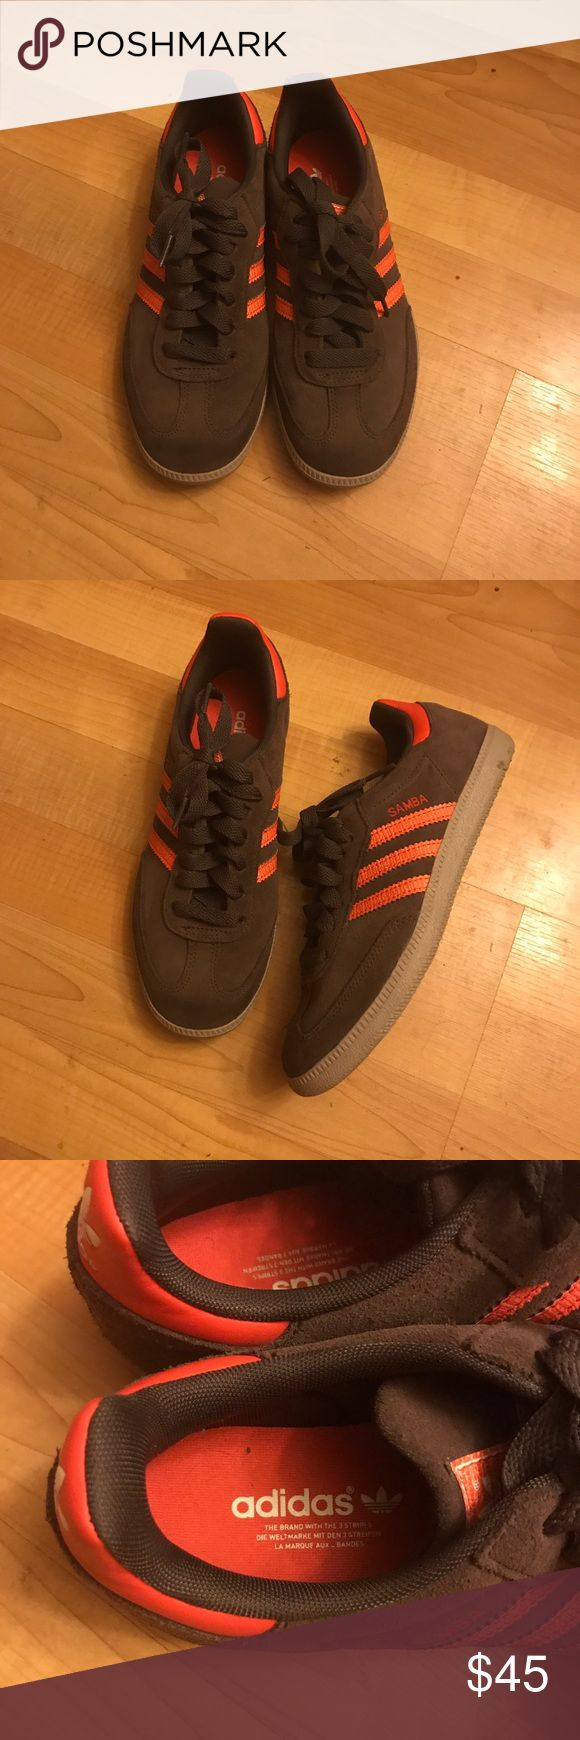 Adidas samba Suede adidas samba in brown with orange details. Very gently used and in great condition. Smoke free. adidas Shoes Sneakers